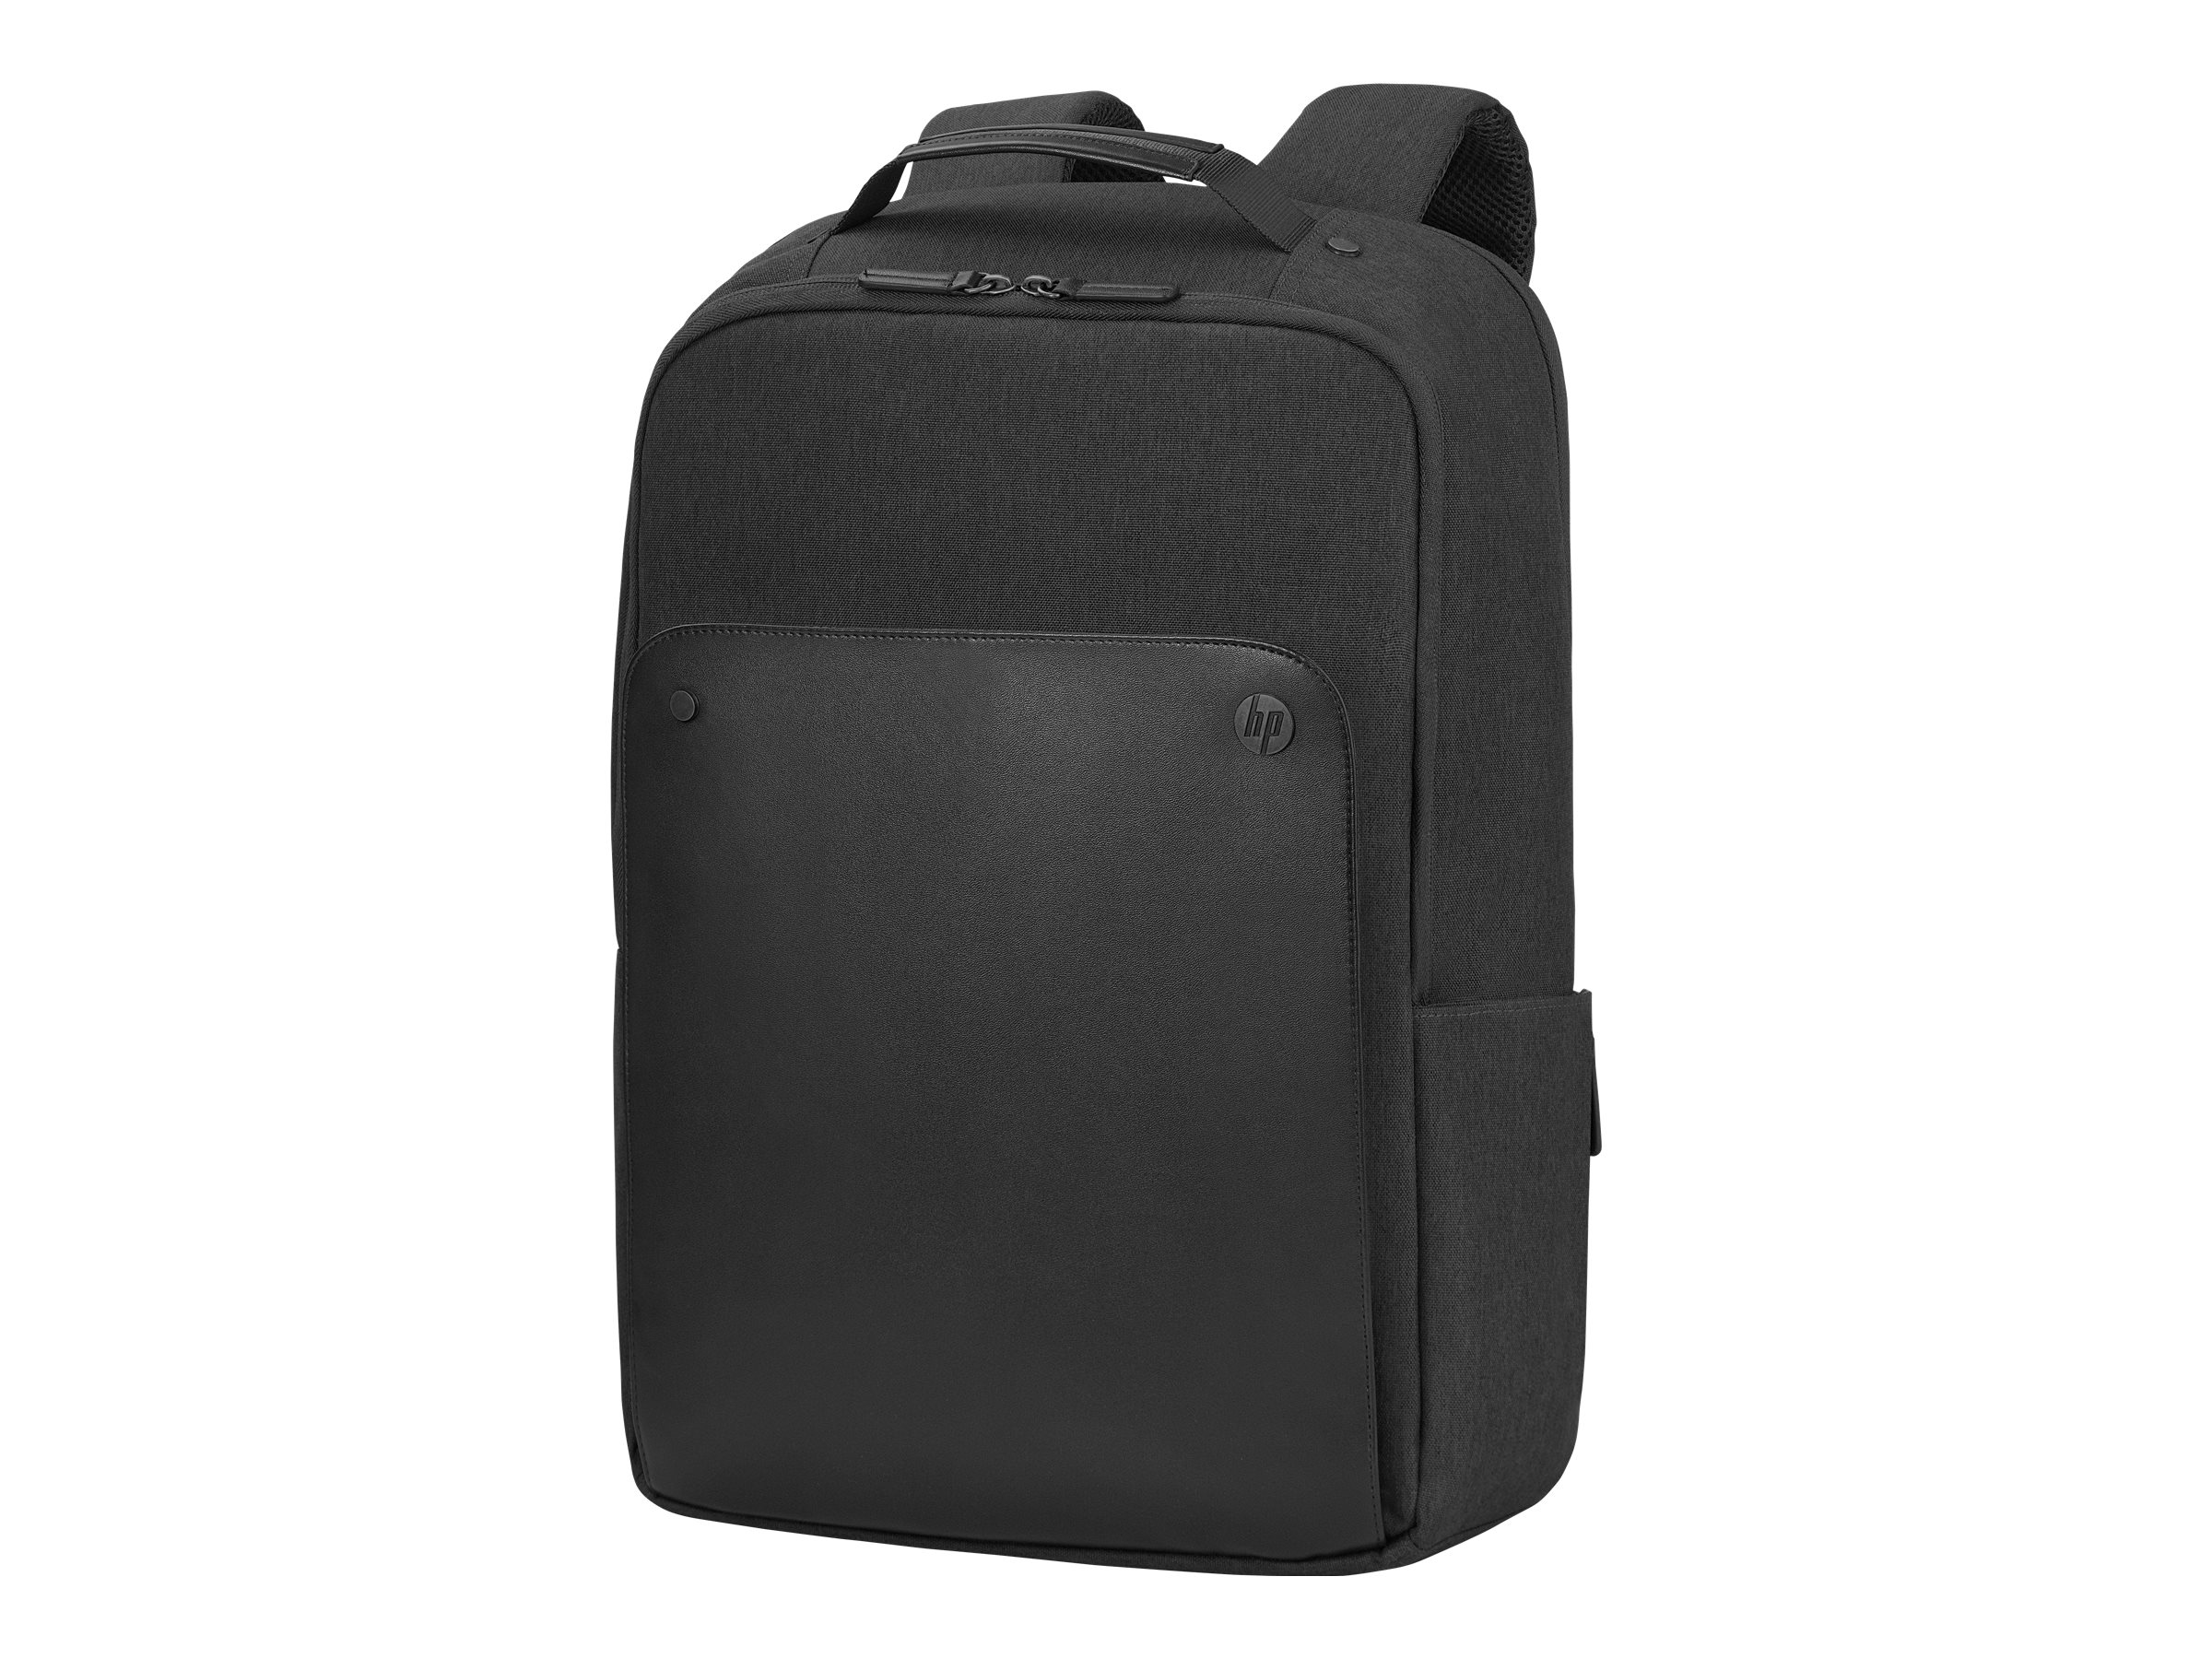 HP Executive notebook carrying backpack